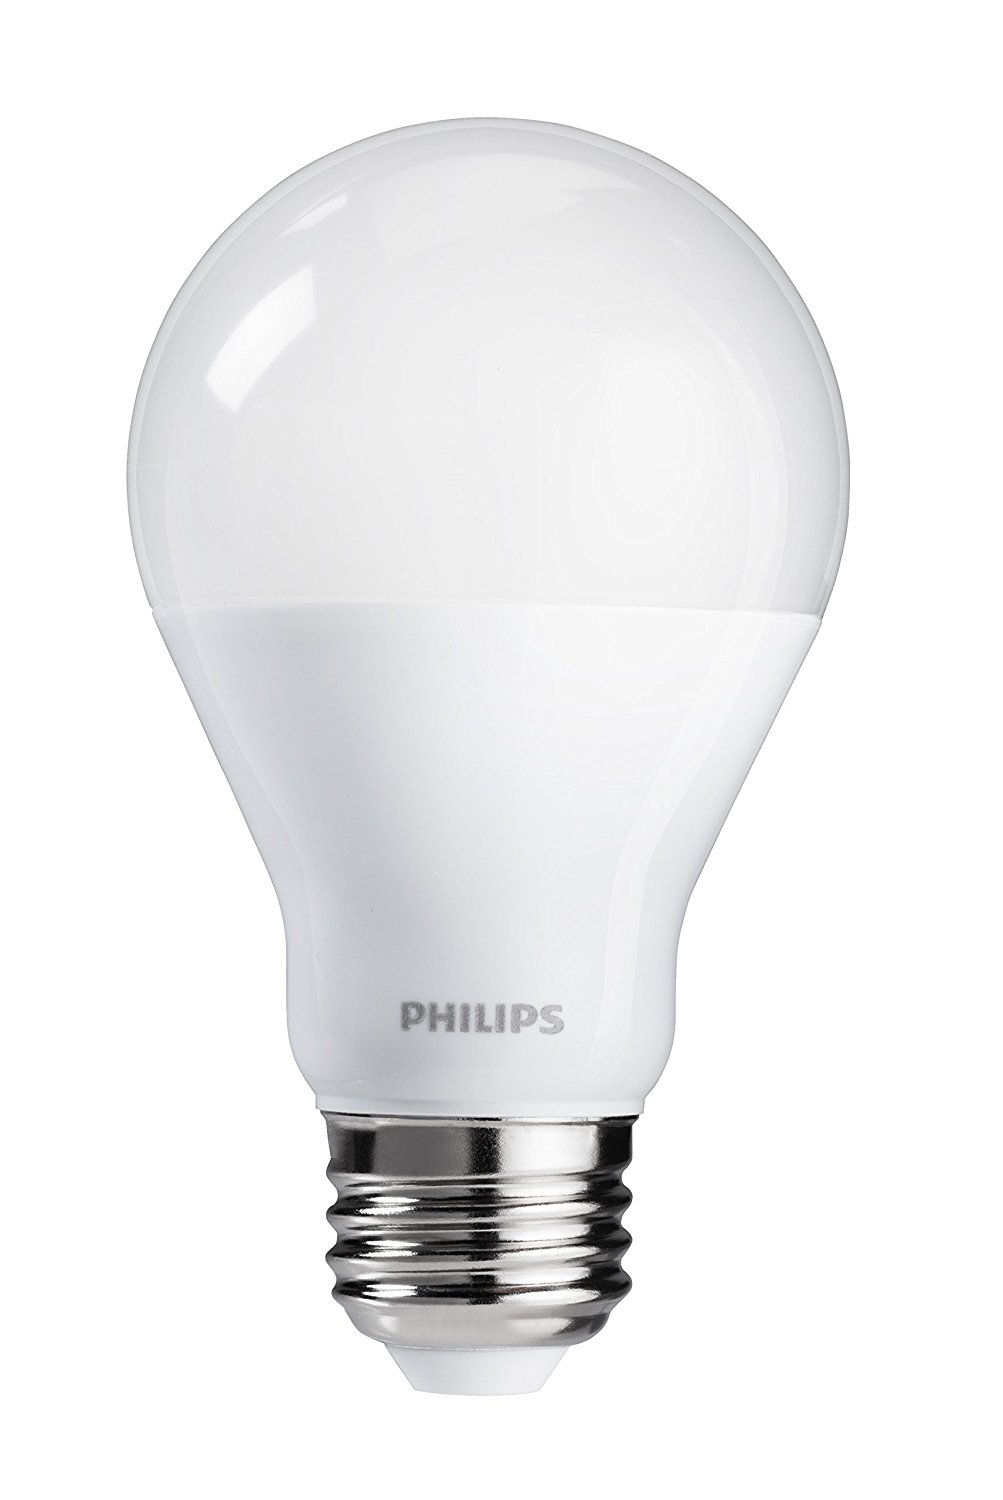 Philips 455949 60 Watt Equivalent A19 Led Light Bulb Non